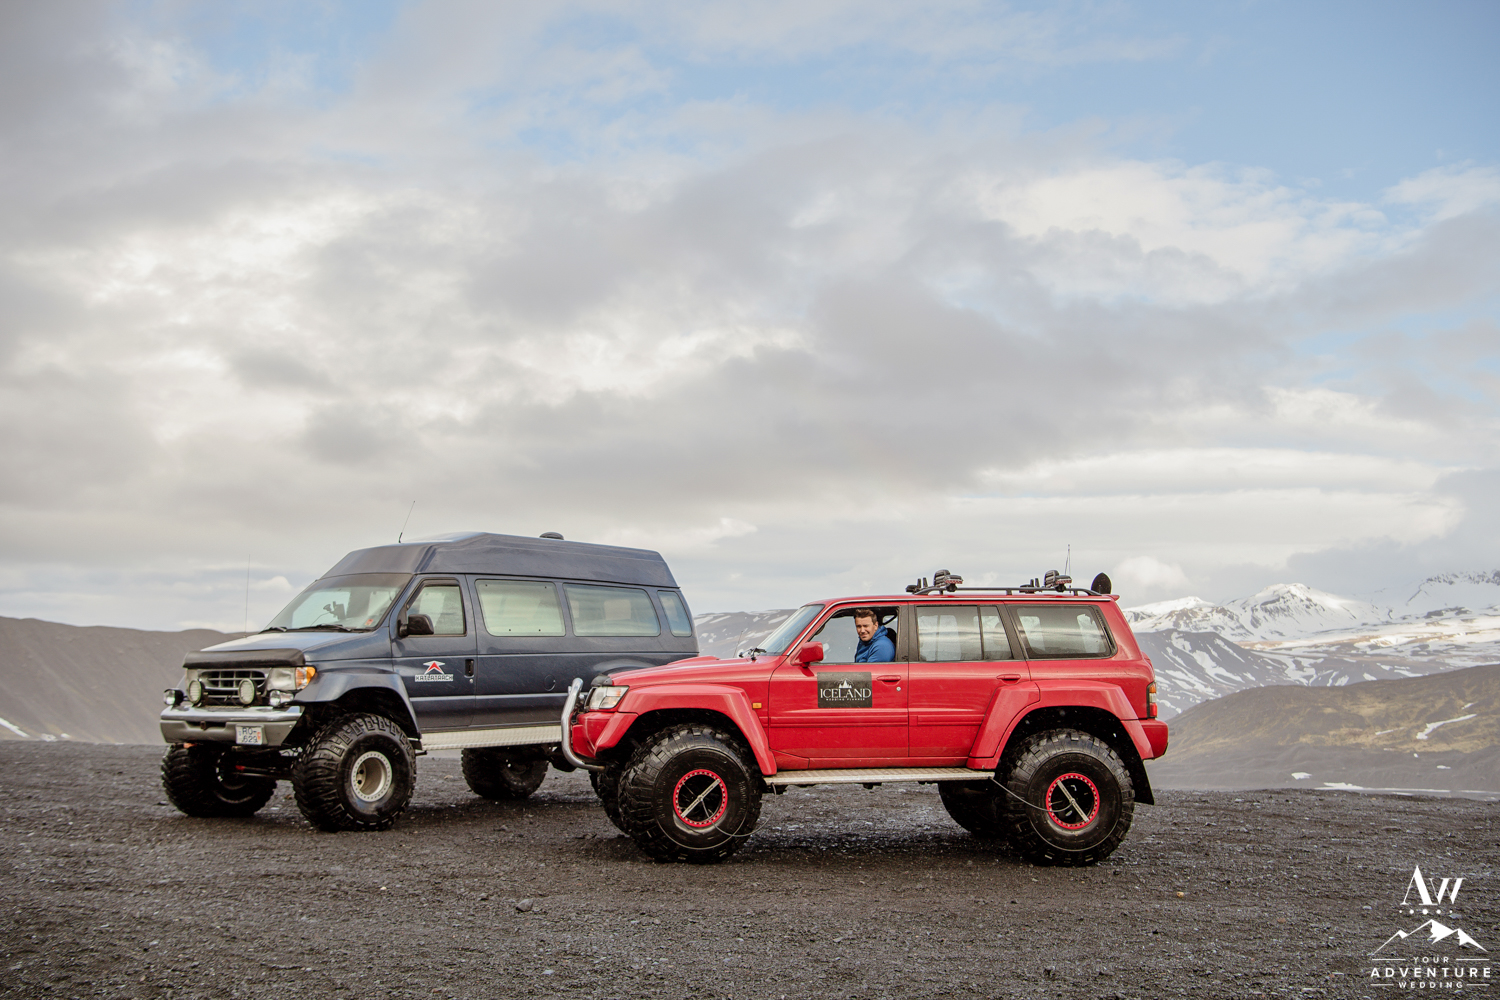 Adventurous Hiking Elopement via Super Jeeps in Iceland